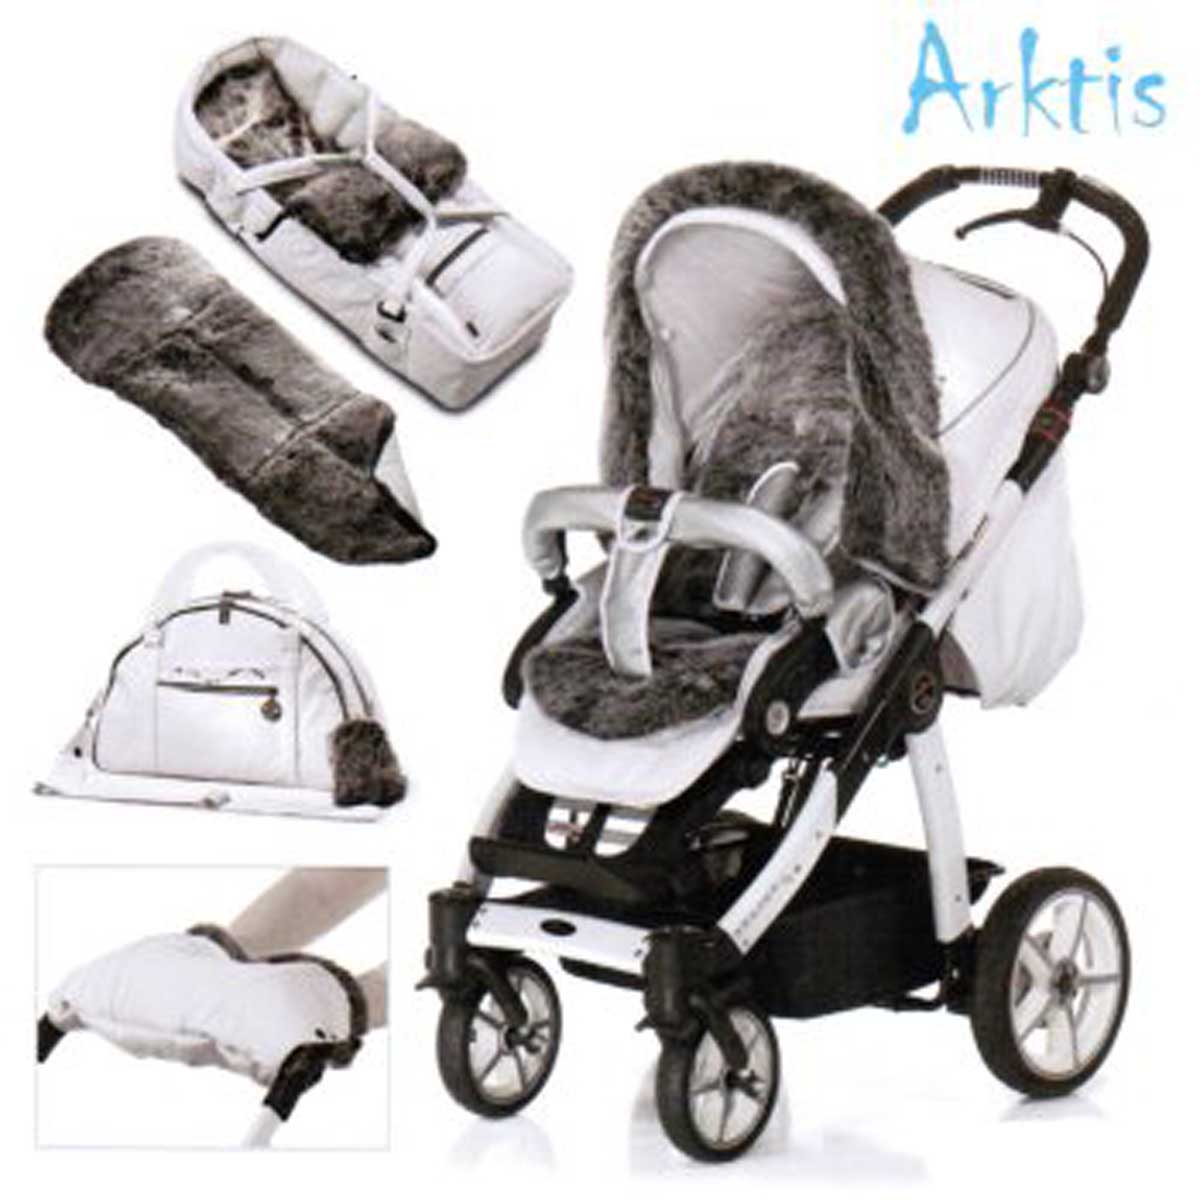 hartan racer gt arktis handbremse kinderwagen komplett set. Black Bedroom Furniture Sets. Home Design Ideas